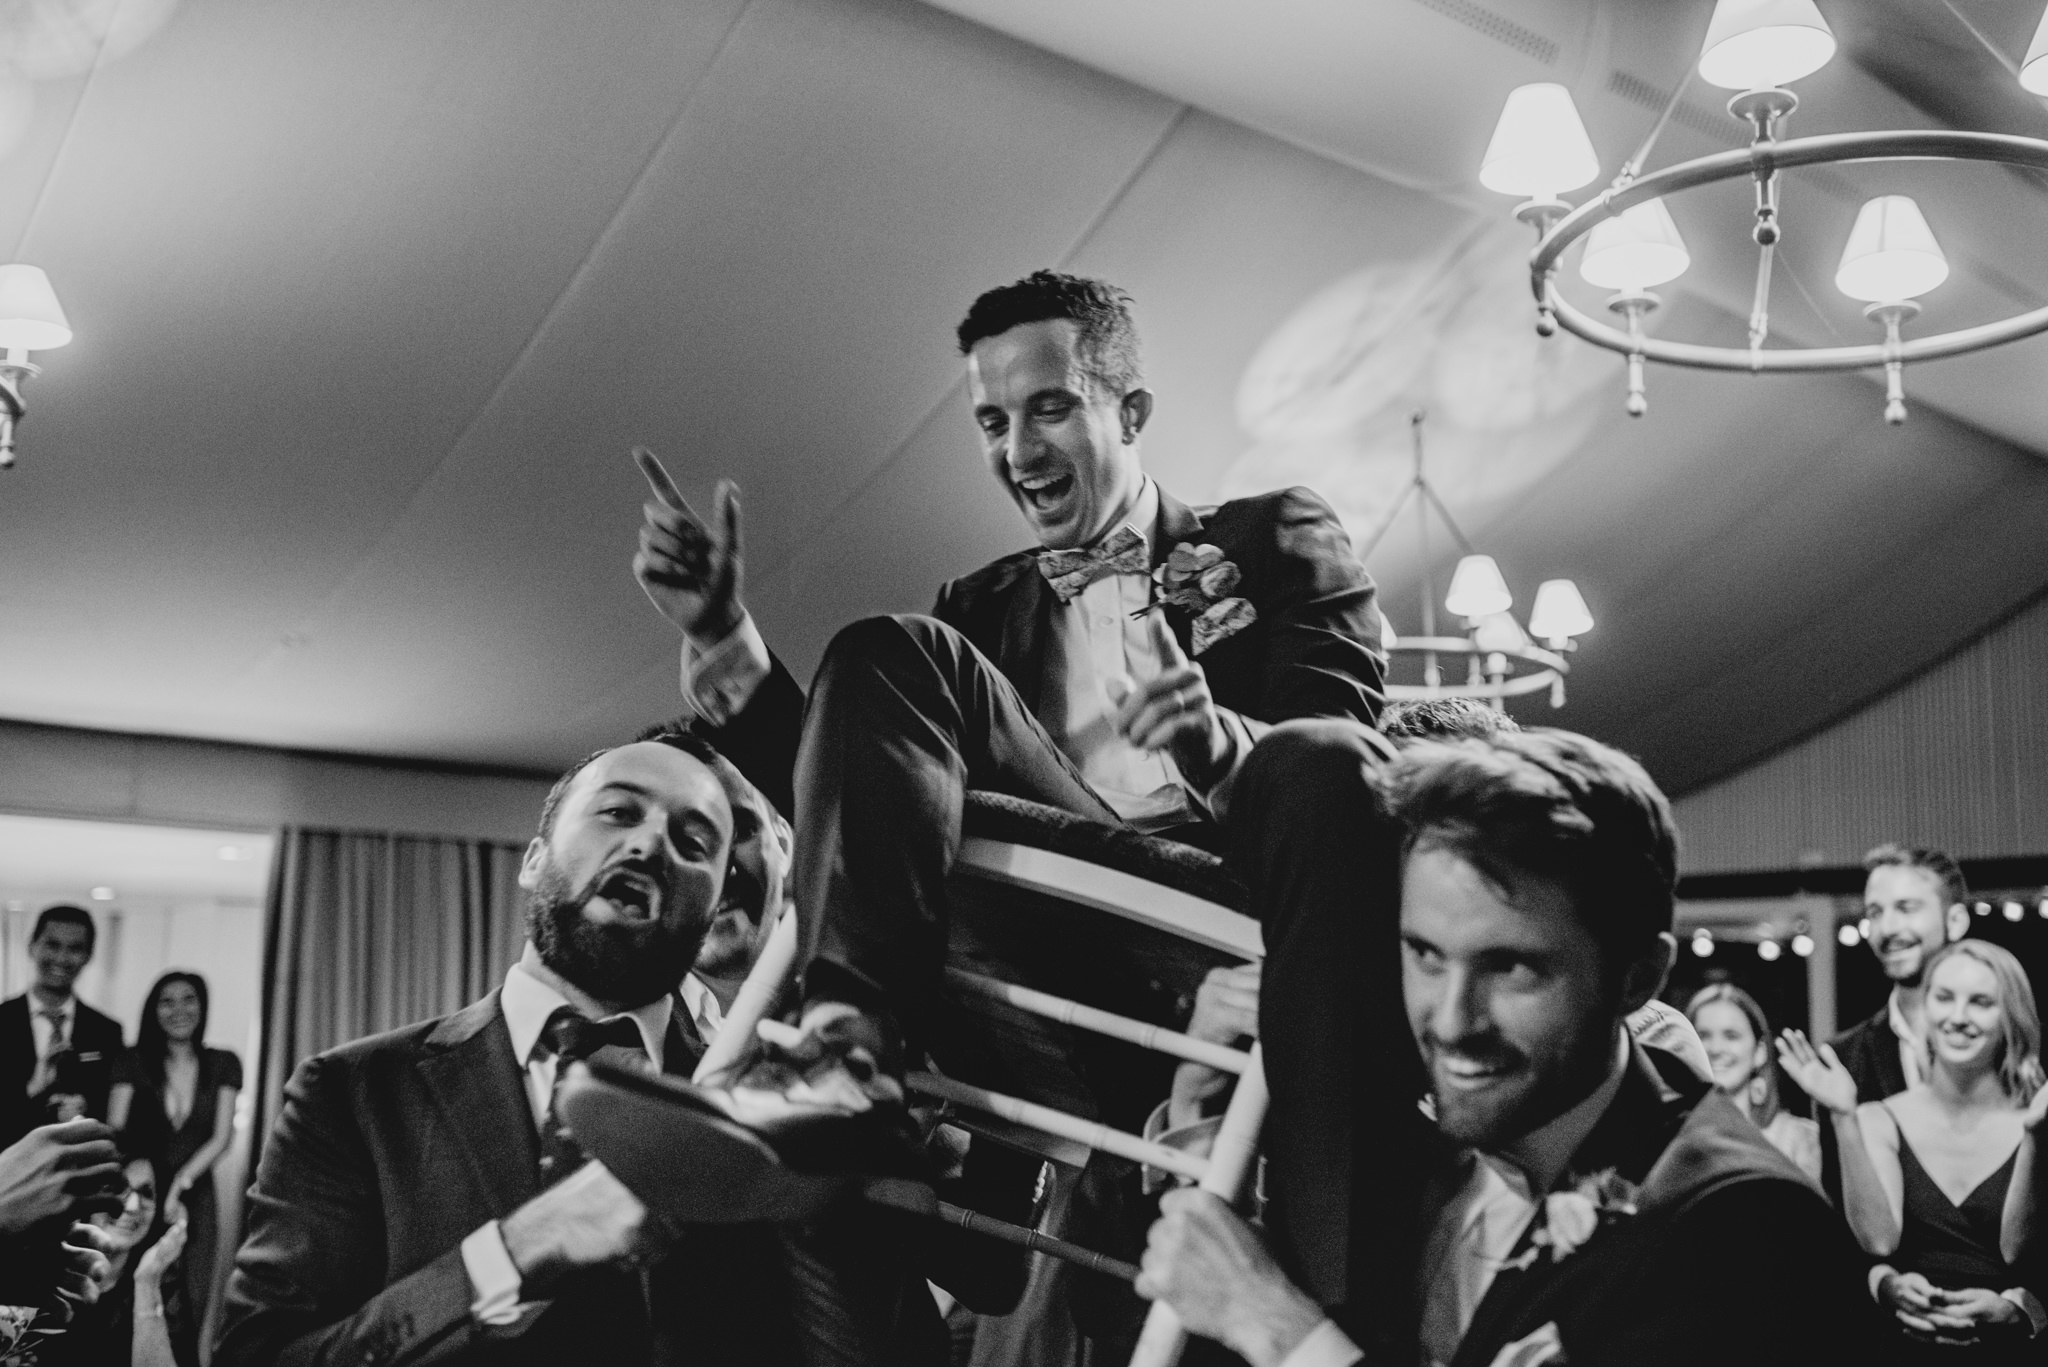 Groom sitting on a chair being carried by several other men